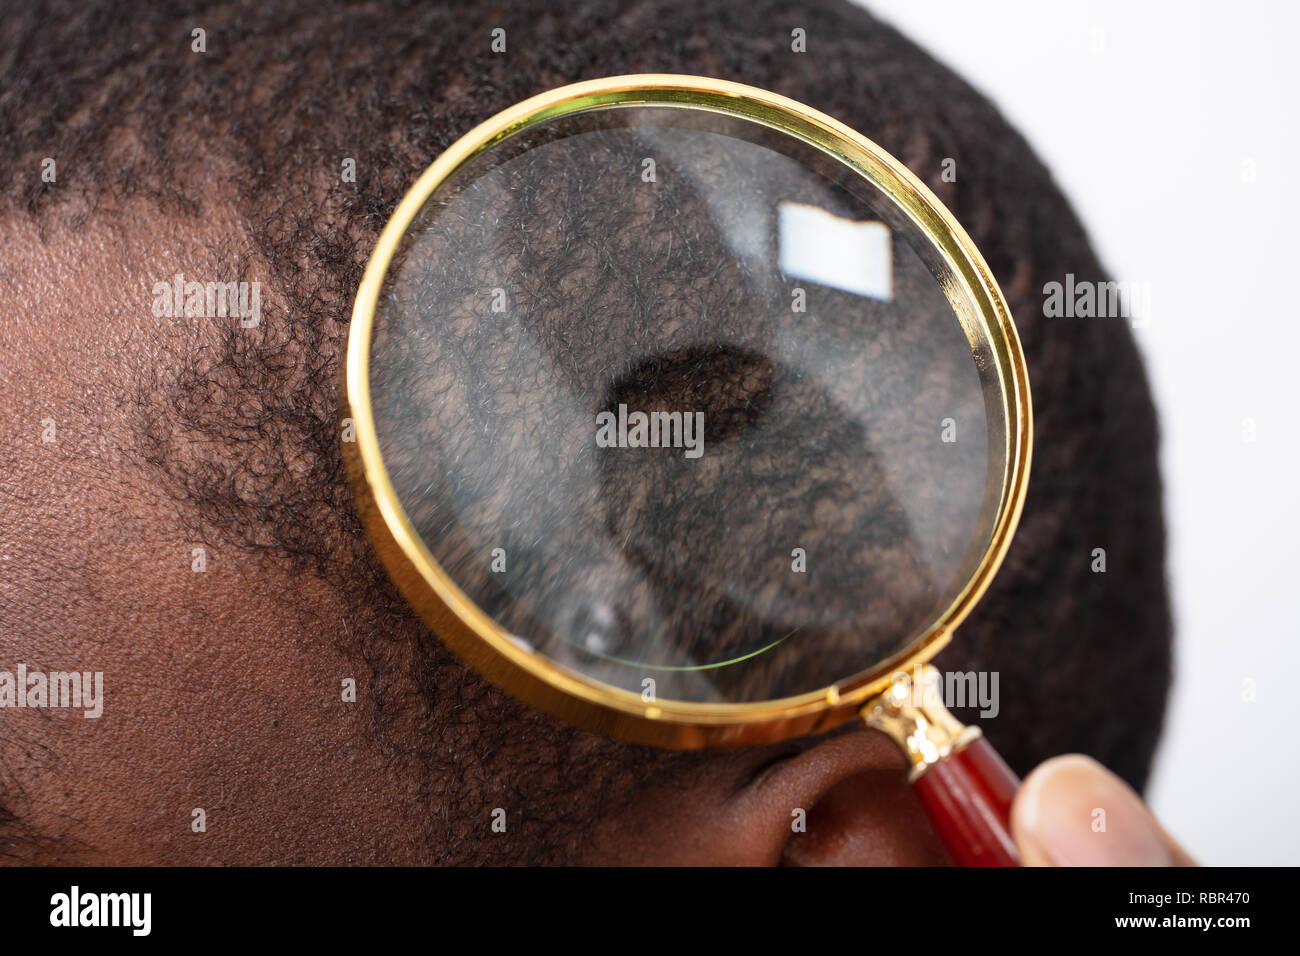 Close-up Of Man's Hair Seen Through Transparent Magnifying Glass Stock Photo